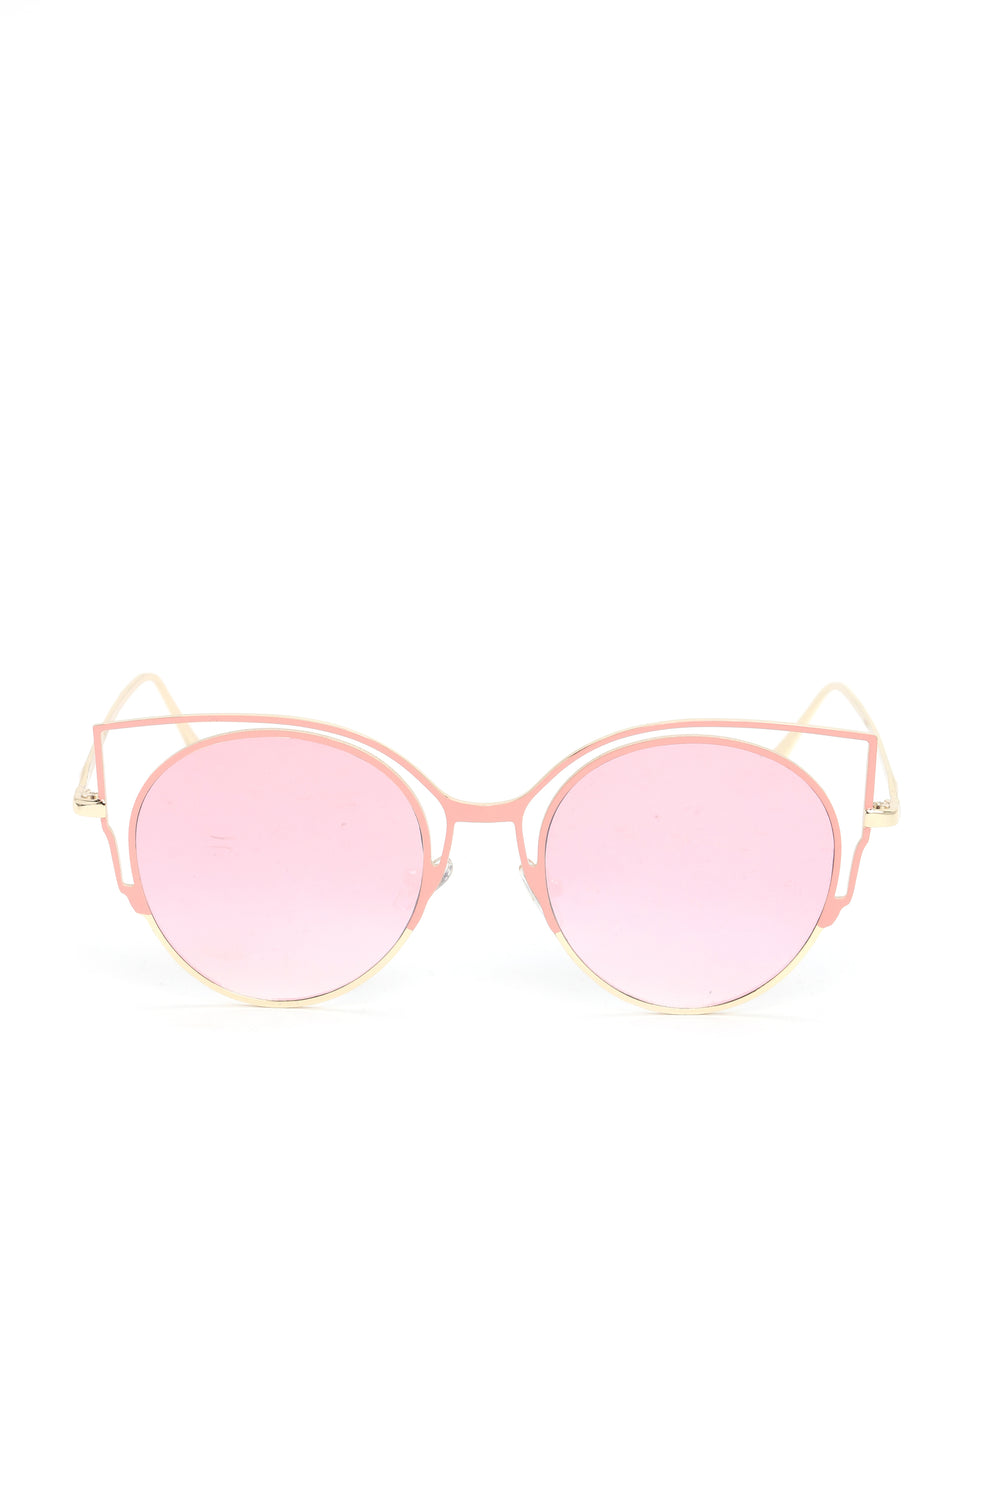 Growl's Night Out Sunglasses - Pink